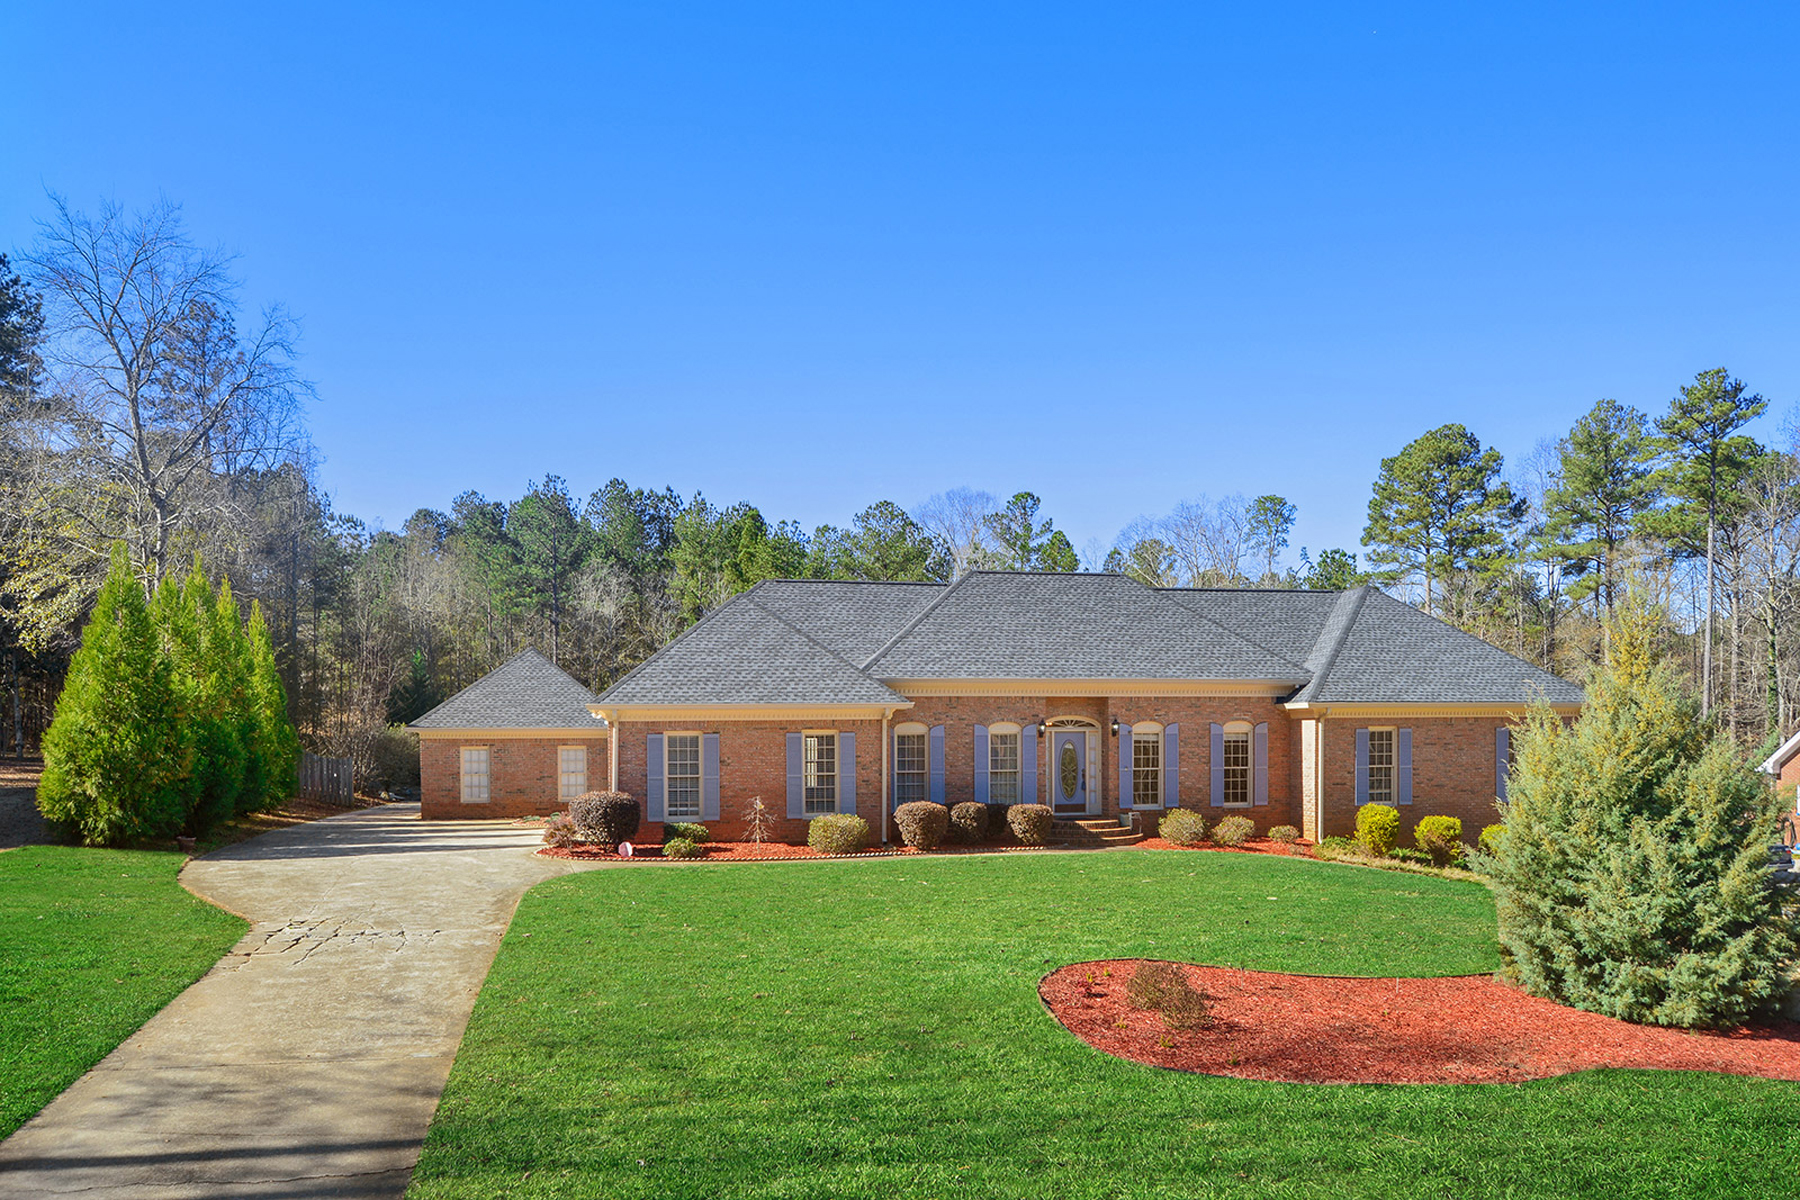 Single Family Home for Sale at Workshop for Hobbies! 165 Lang Drive Fayetteville, Georgia 30214 United States